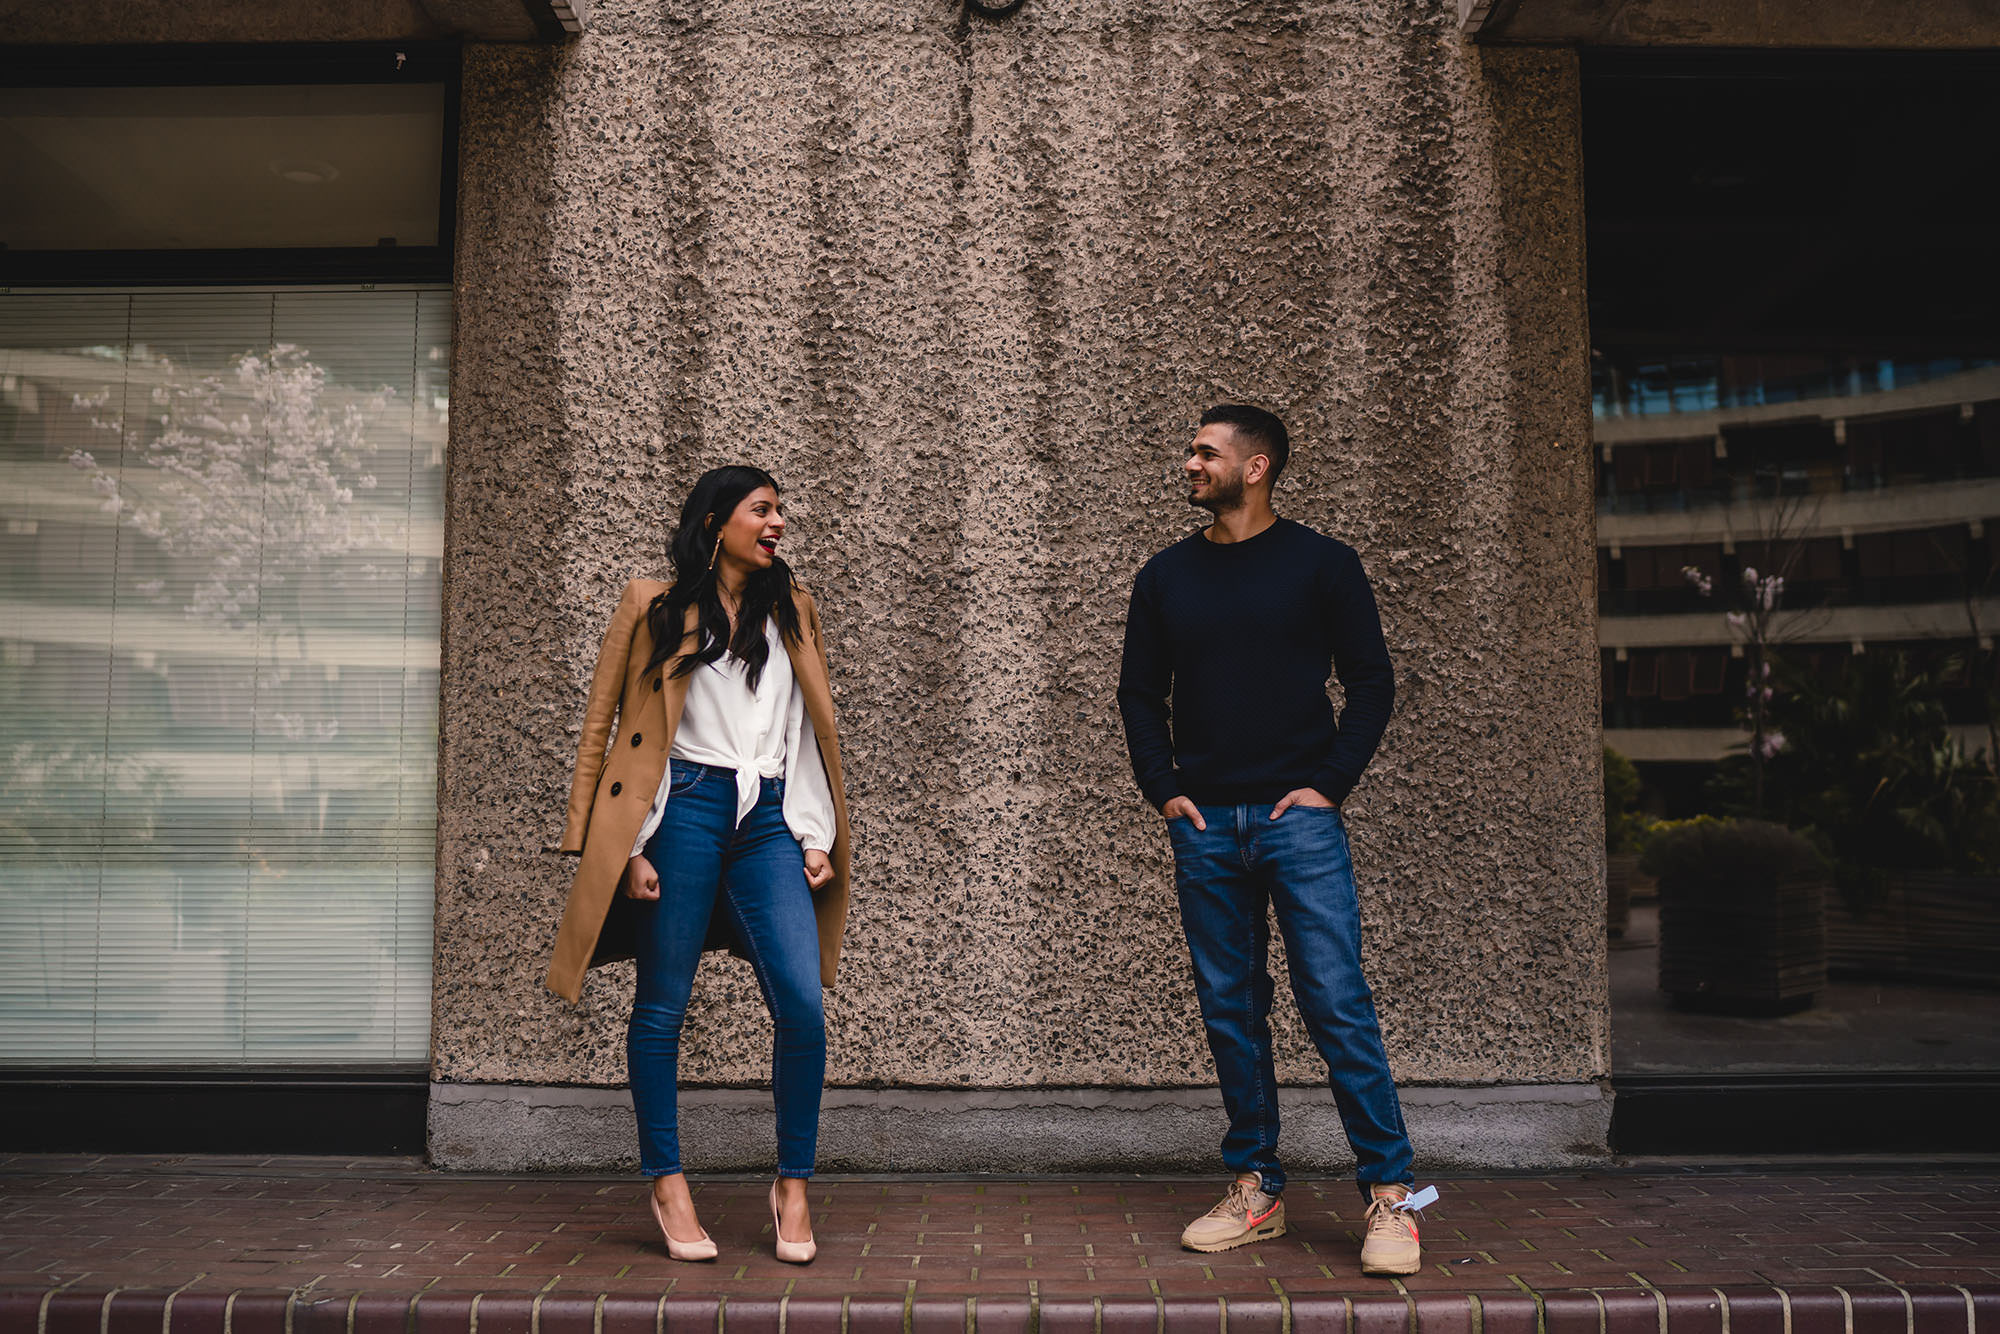 Prewedding shoot barbican london devan jigna